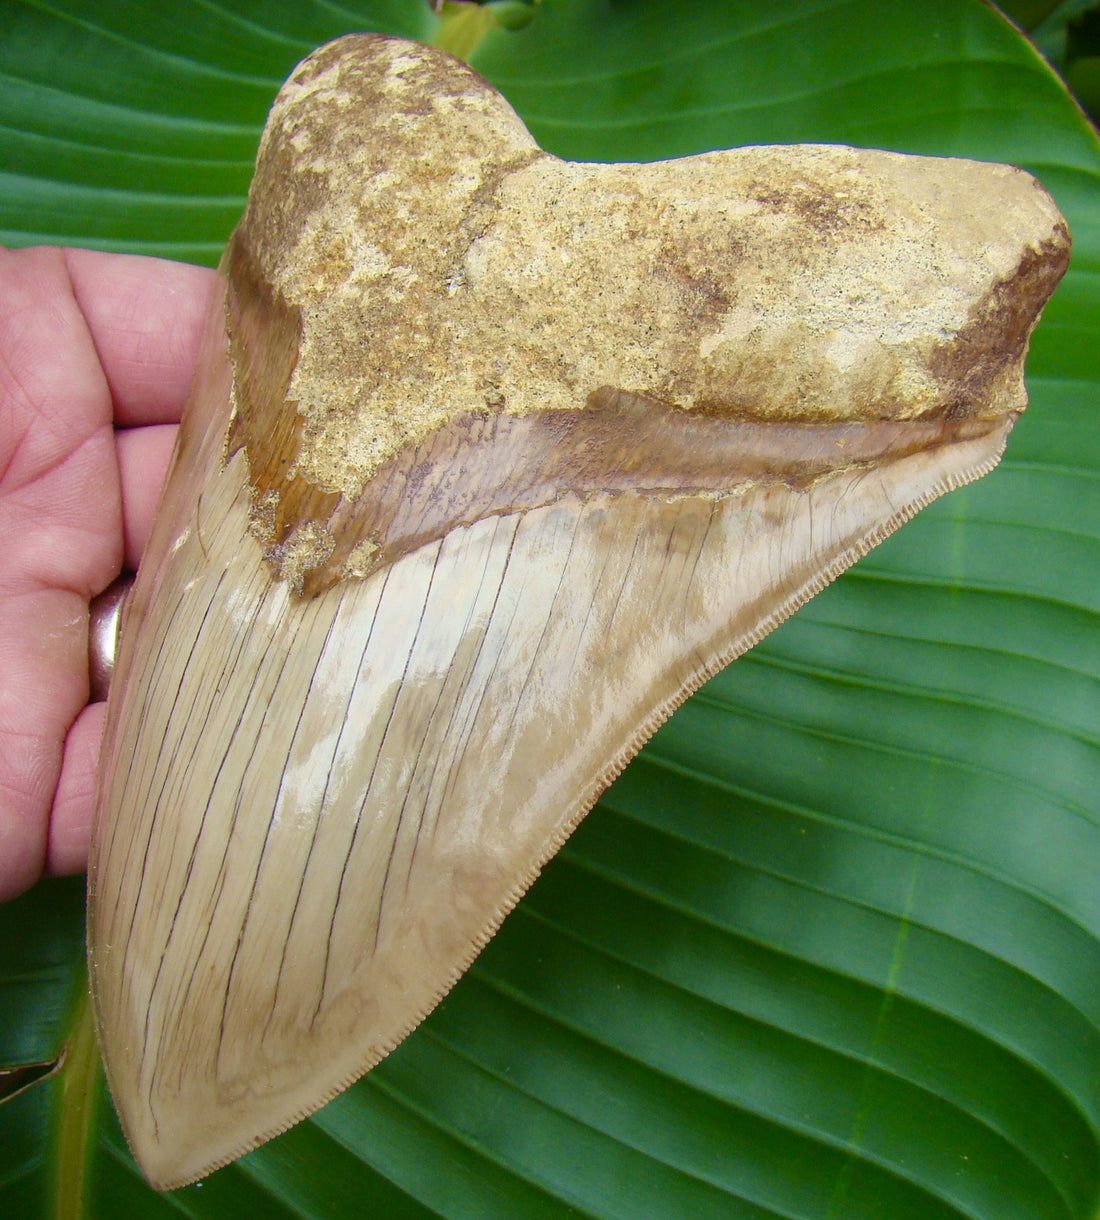 Megalodon Tooth Copy of 5.71 in.  MUSEUM GRADE - Indonesian Megalodon Shark Tooth